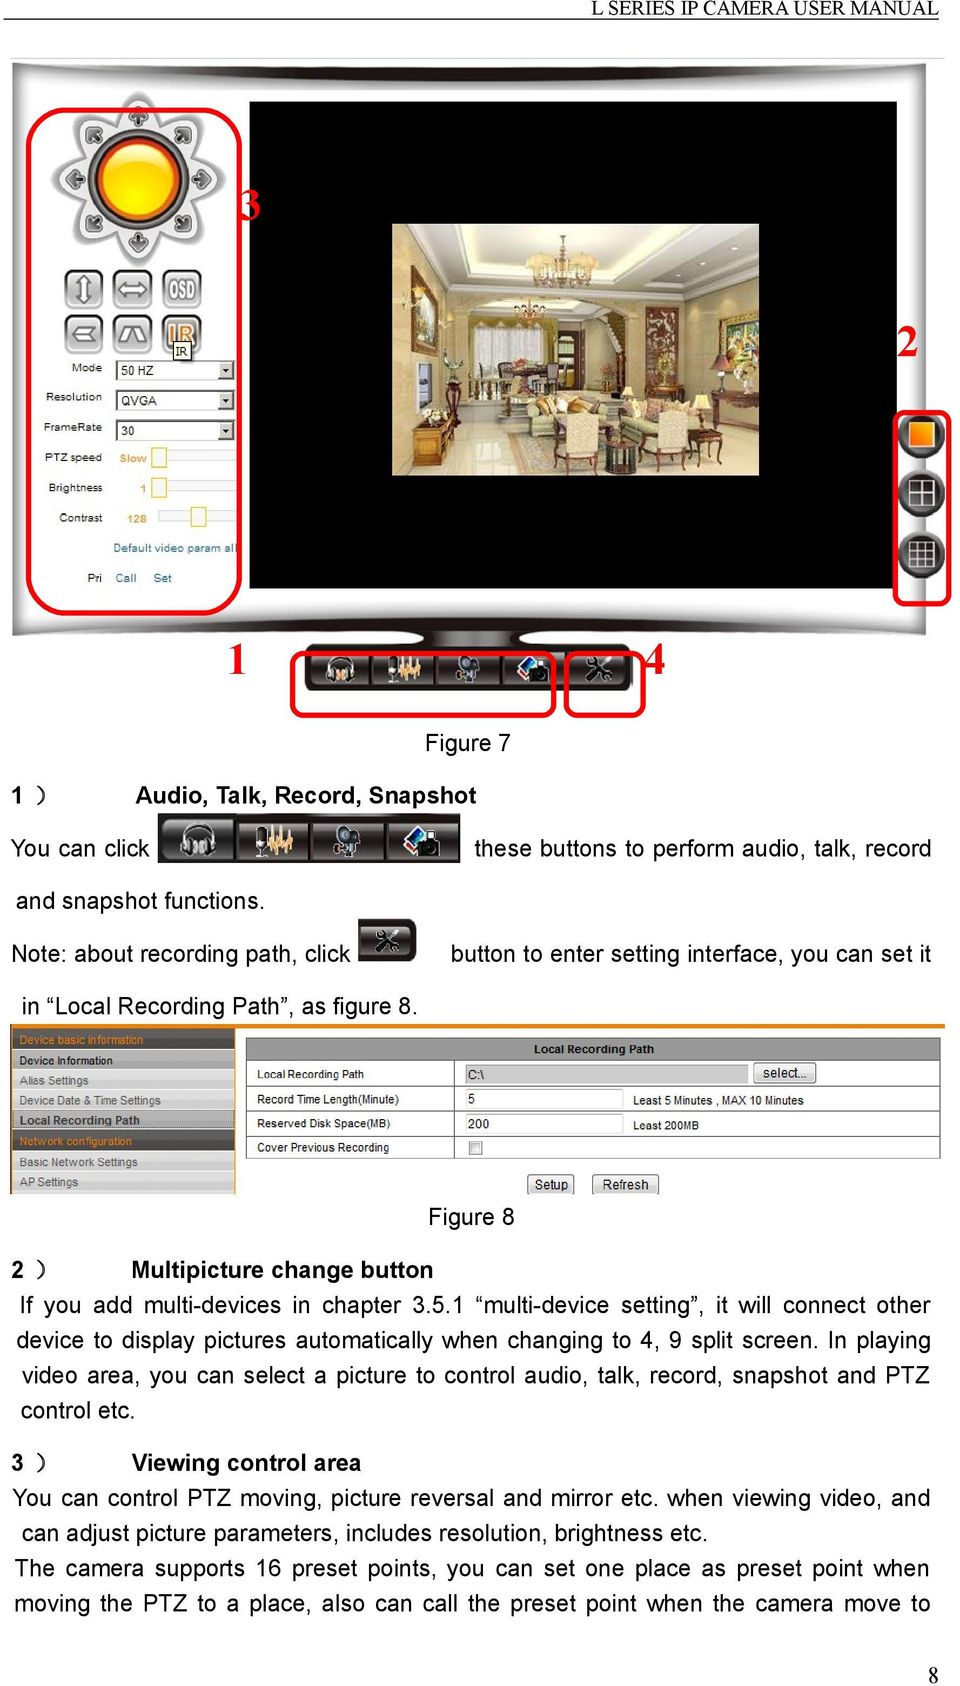 5.1 multi-device setting, it will connect other device to display pictures automatically when changing to 4, 9 split screen.